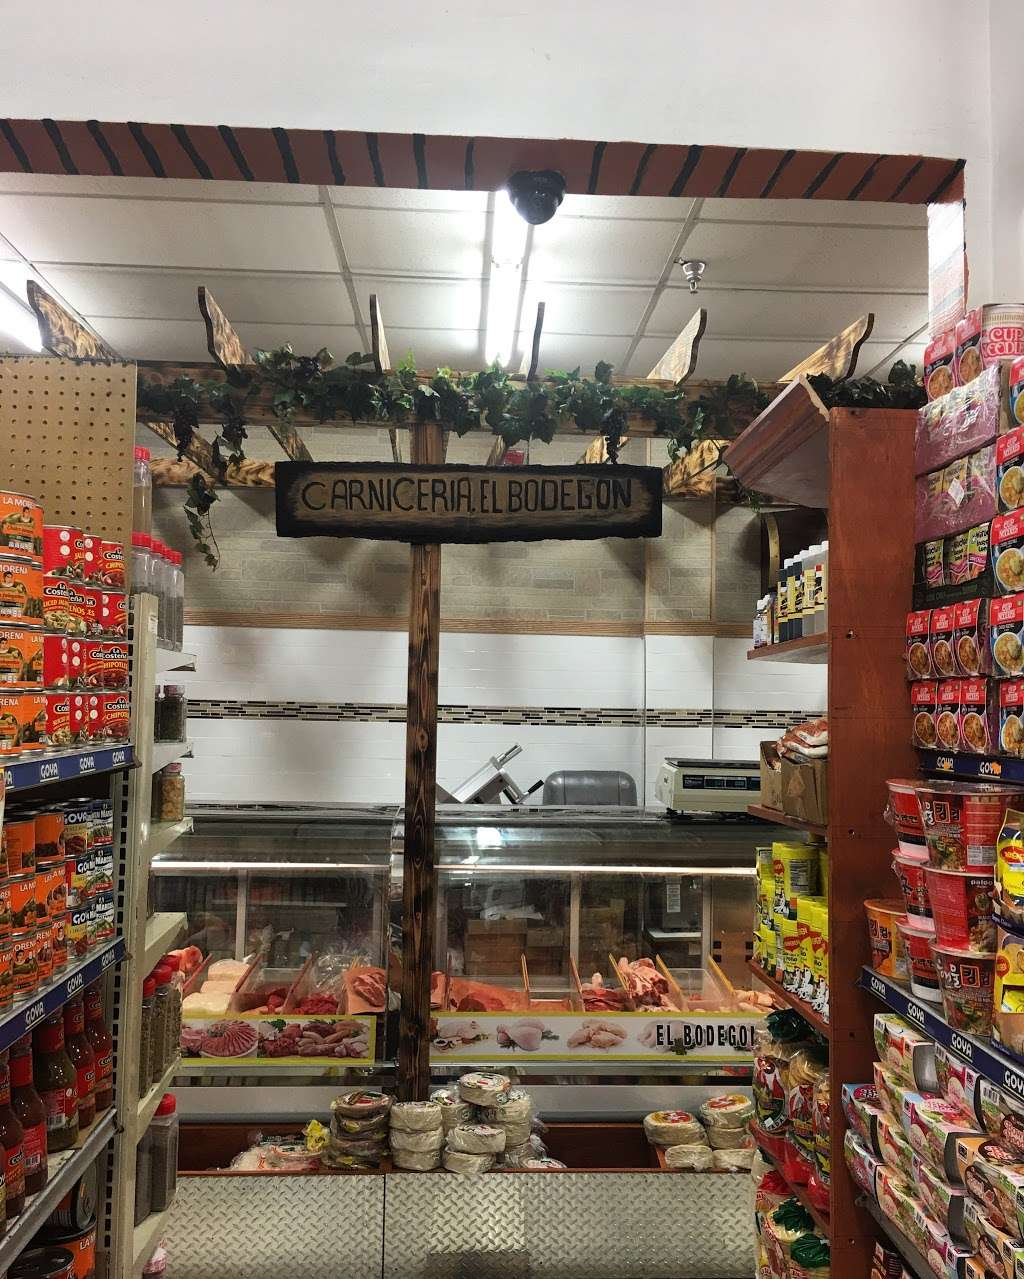 El Bodegon supermarket - convenience store  | Photo 8 of 10 | Address: 119 Broadway, Passaic, NJ 07055, USA | Phone: (973) 916-0877